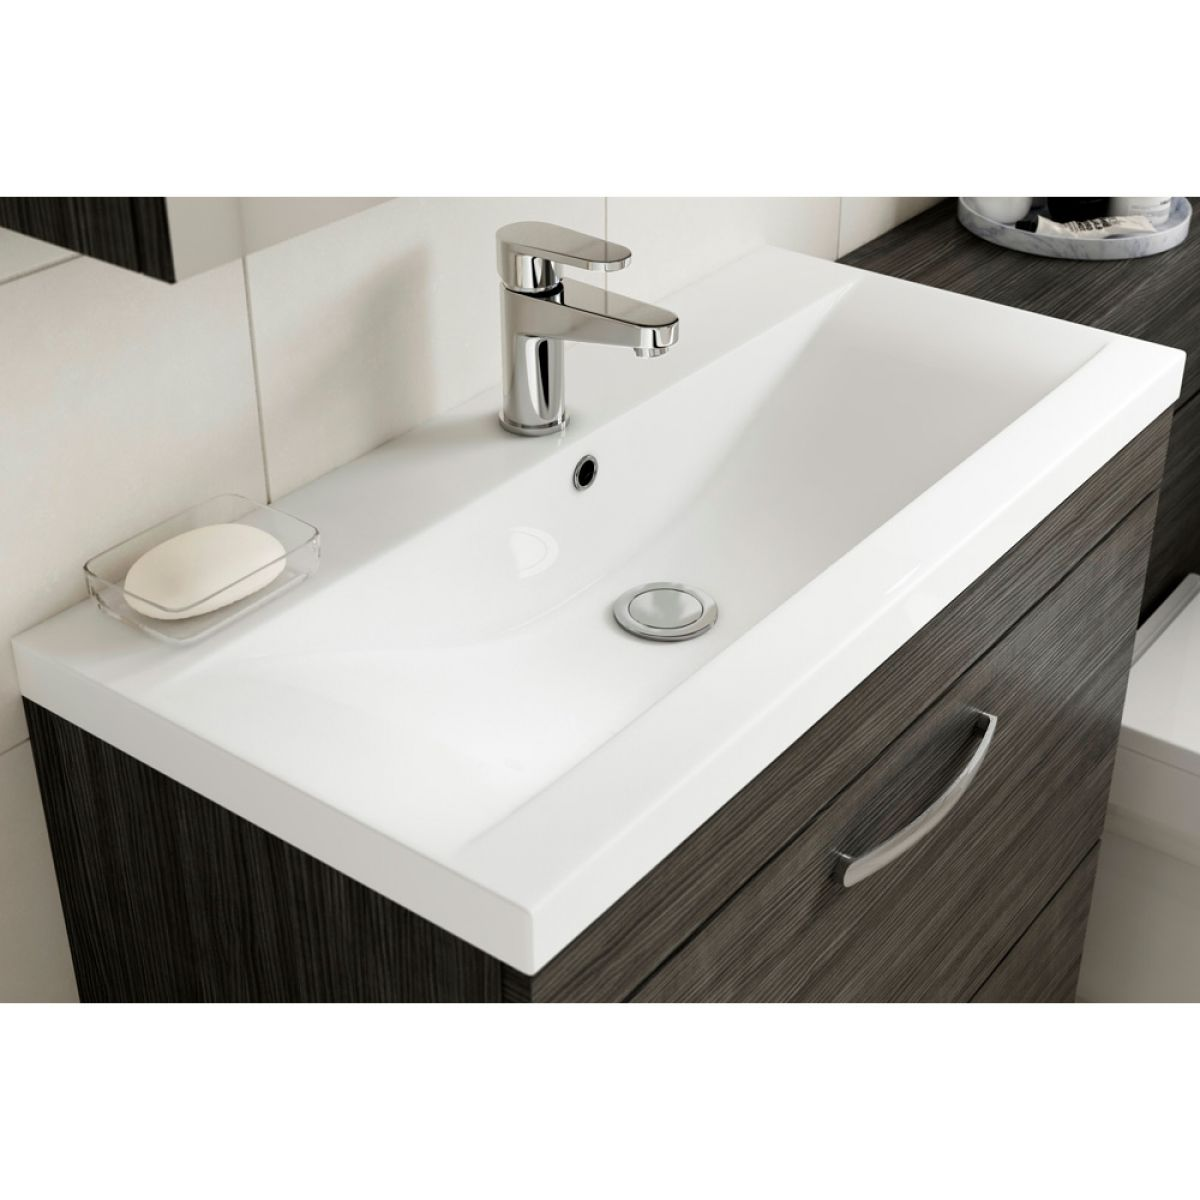 Premier Athena Basin Option 1 - Mid Edge Basin